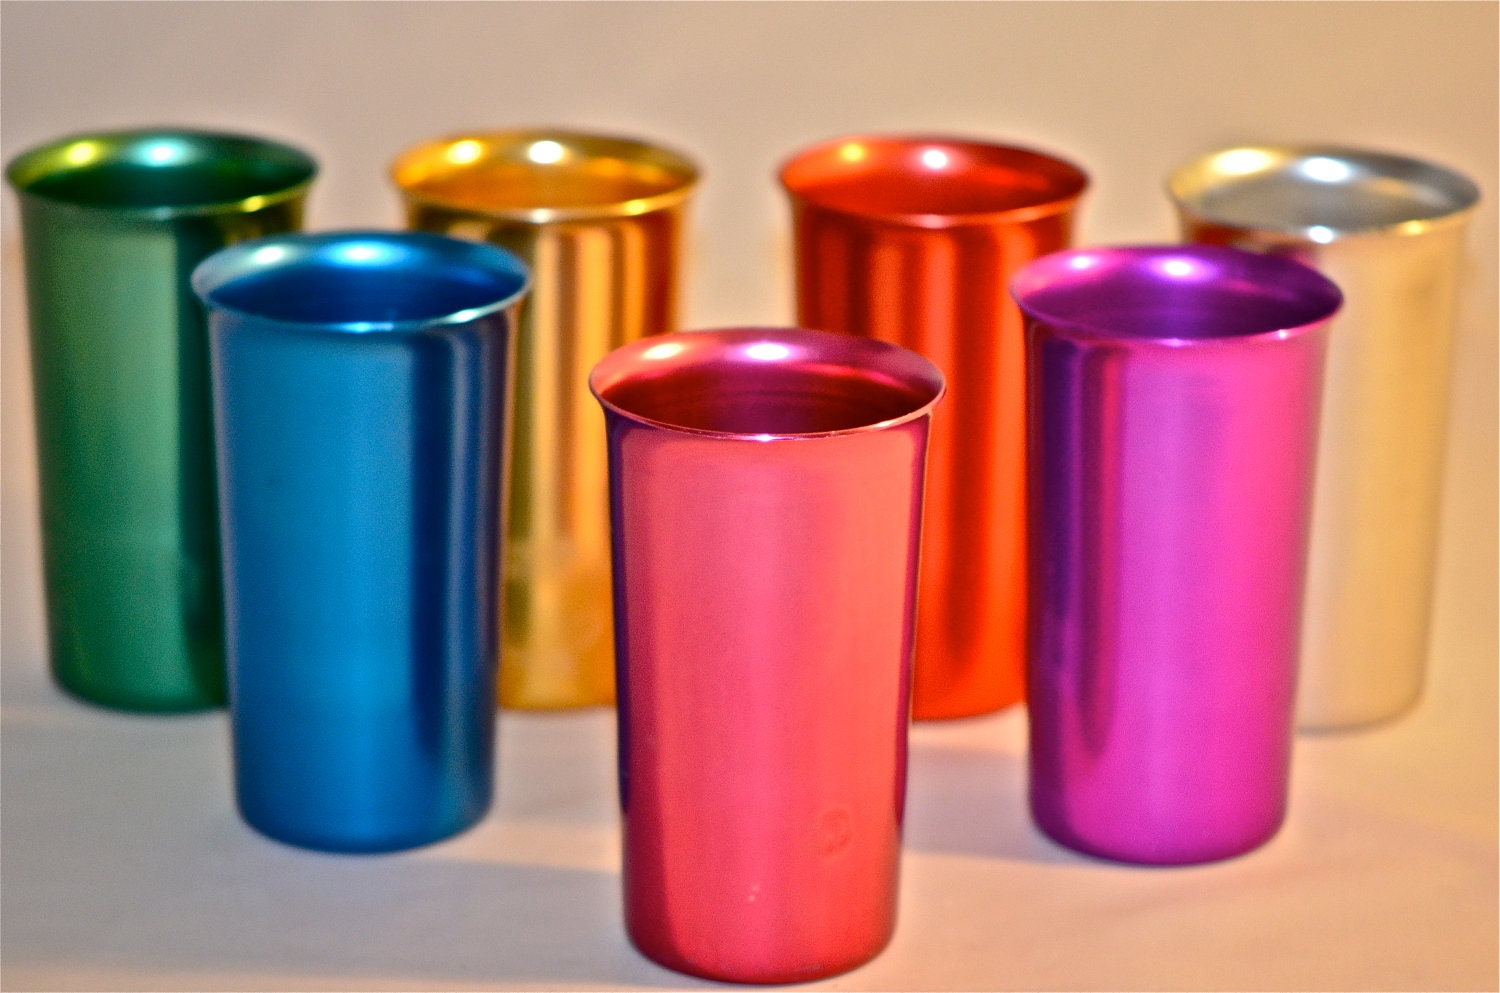 Mid Century Modern SUNBURST Atomic Colored Aluminum Tumblers in Bright Bold & Beautiful Anodized Colors